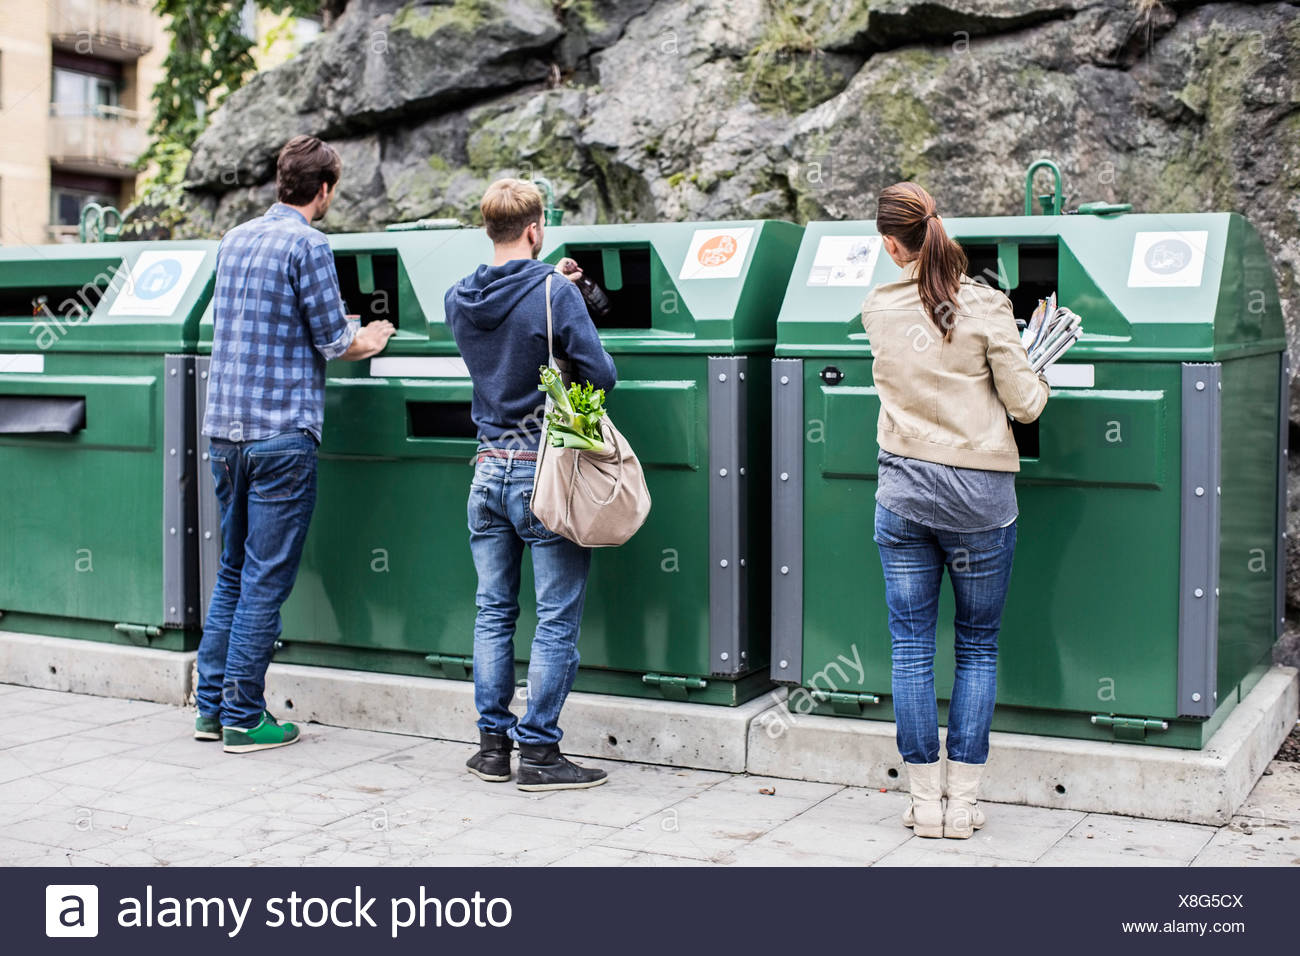 Rear view of friends putting recyclable materials into recycling bins - Stock Image